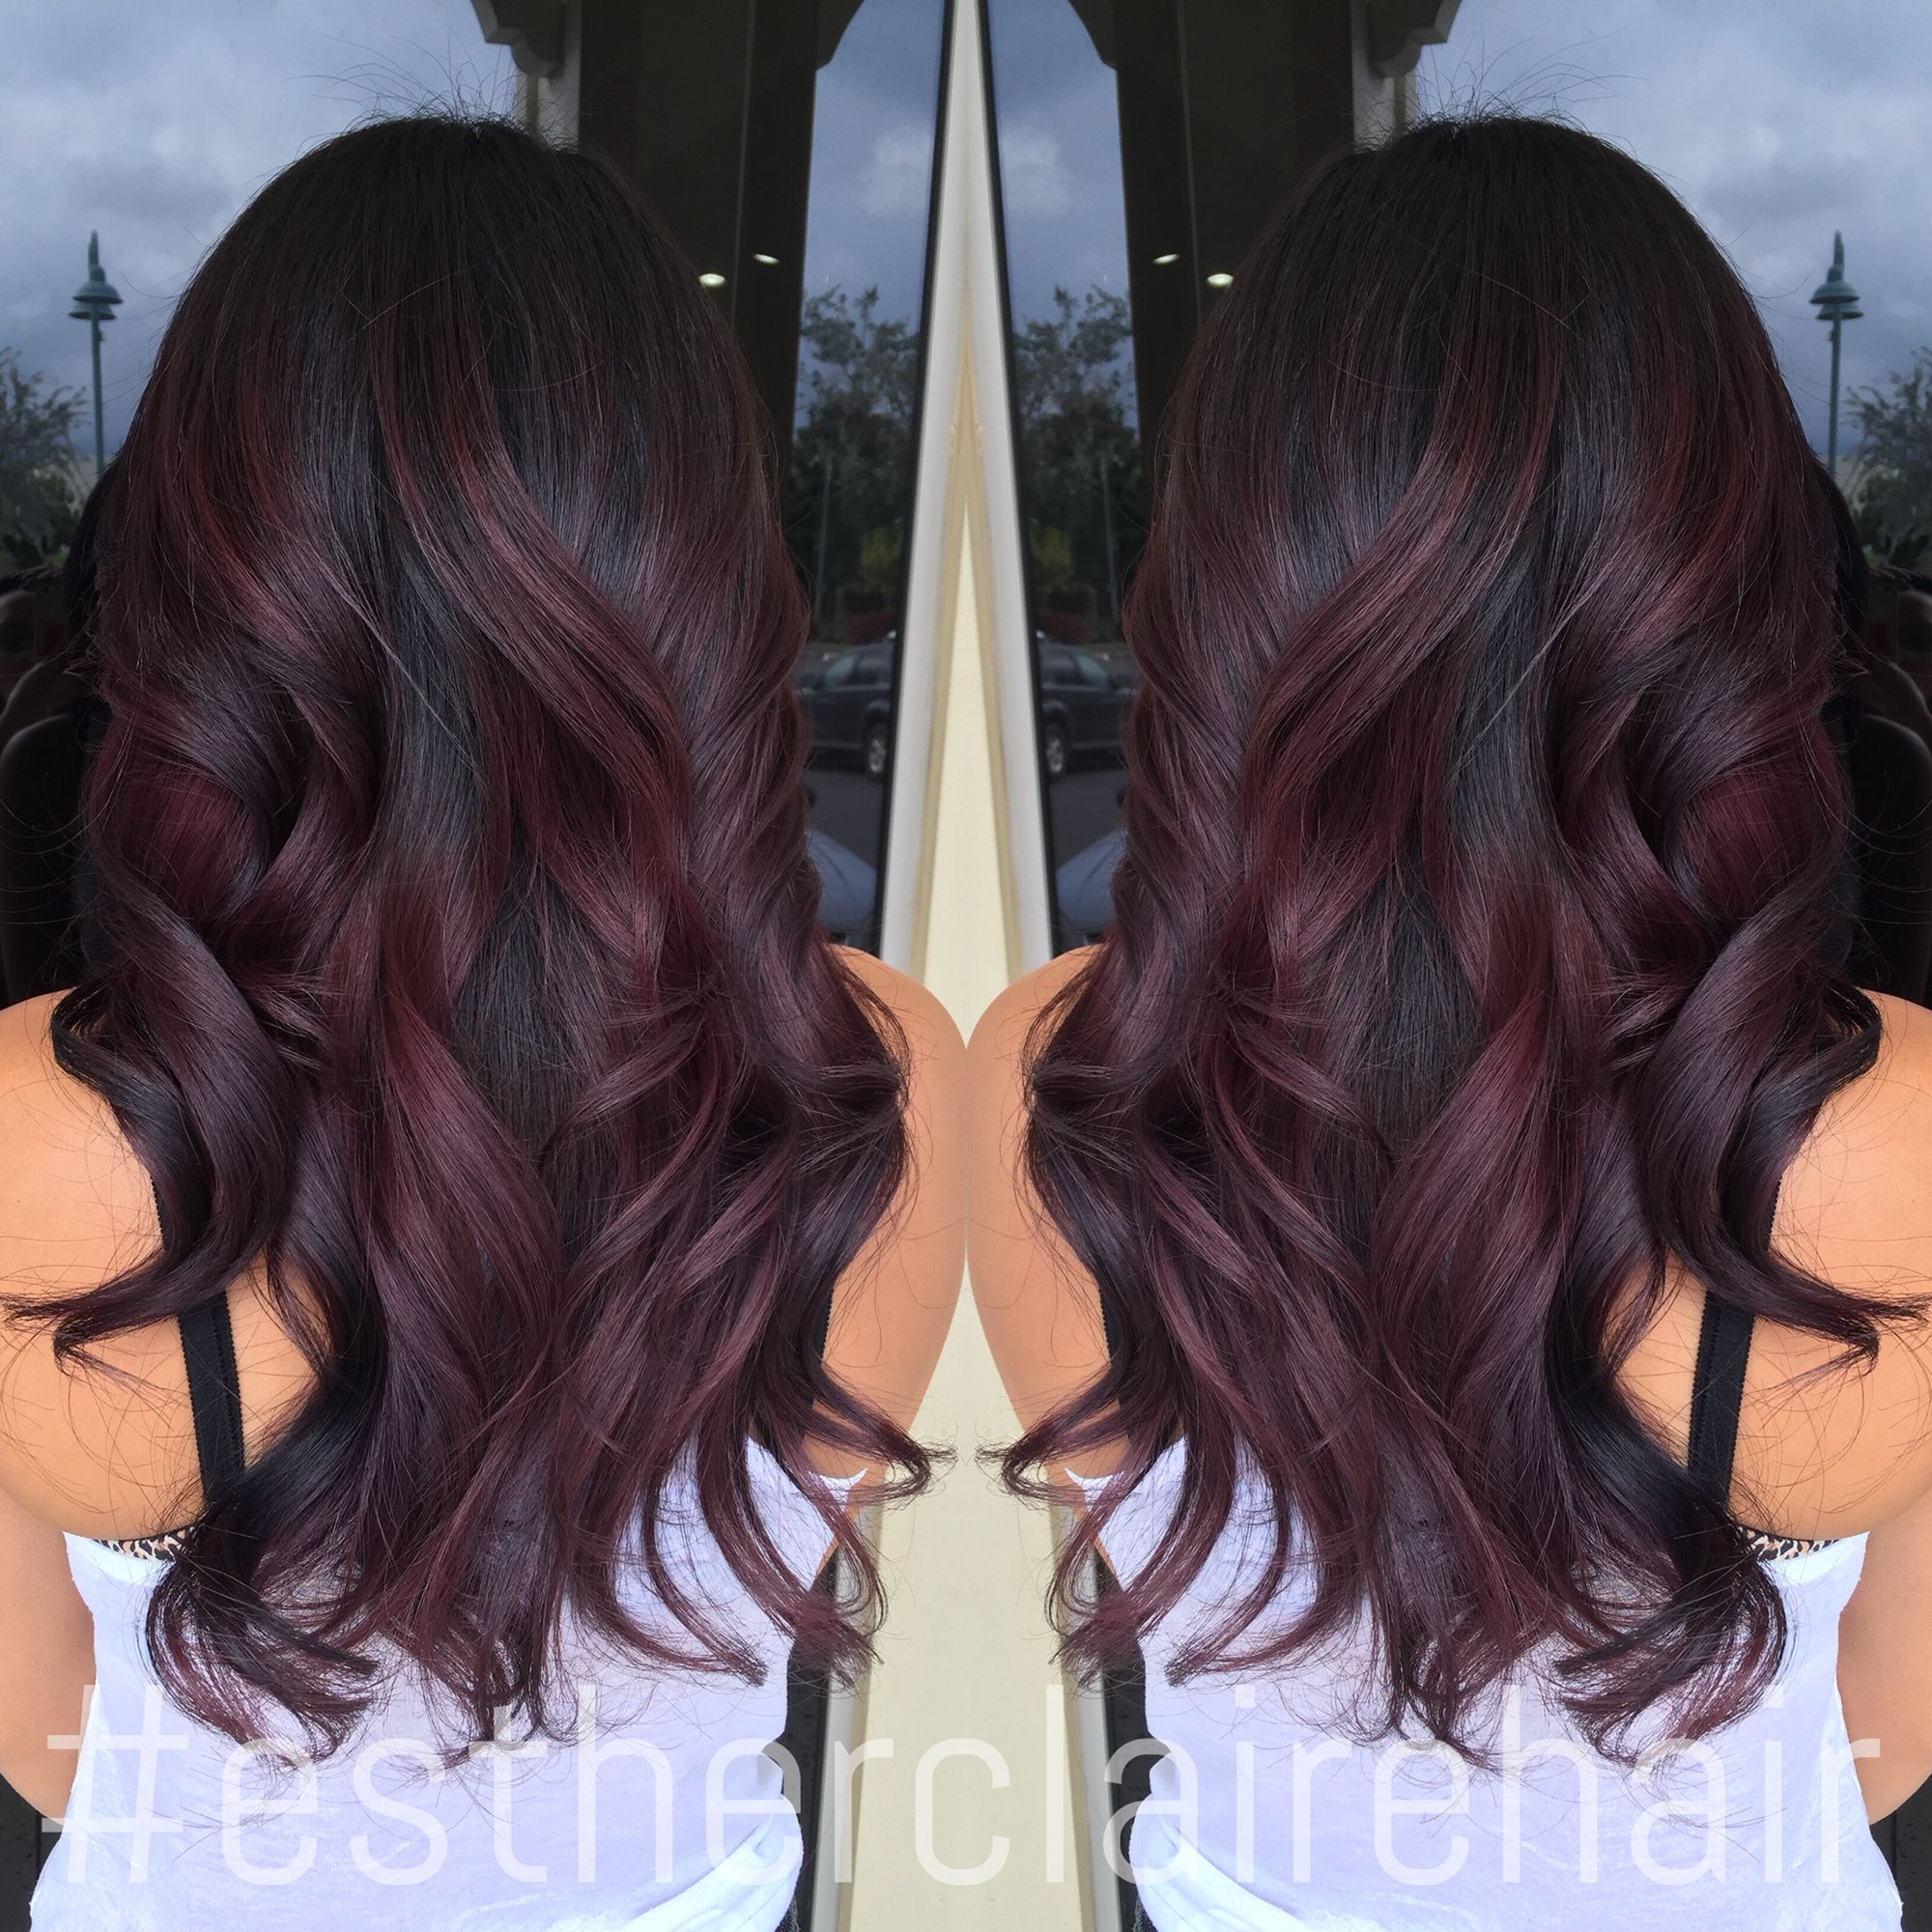 Fave Burgundy color balayage Need it lower tho and more at the